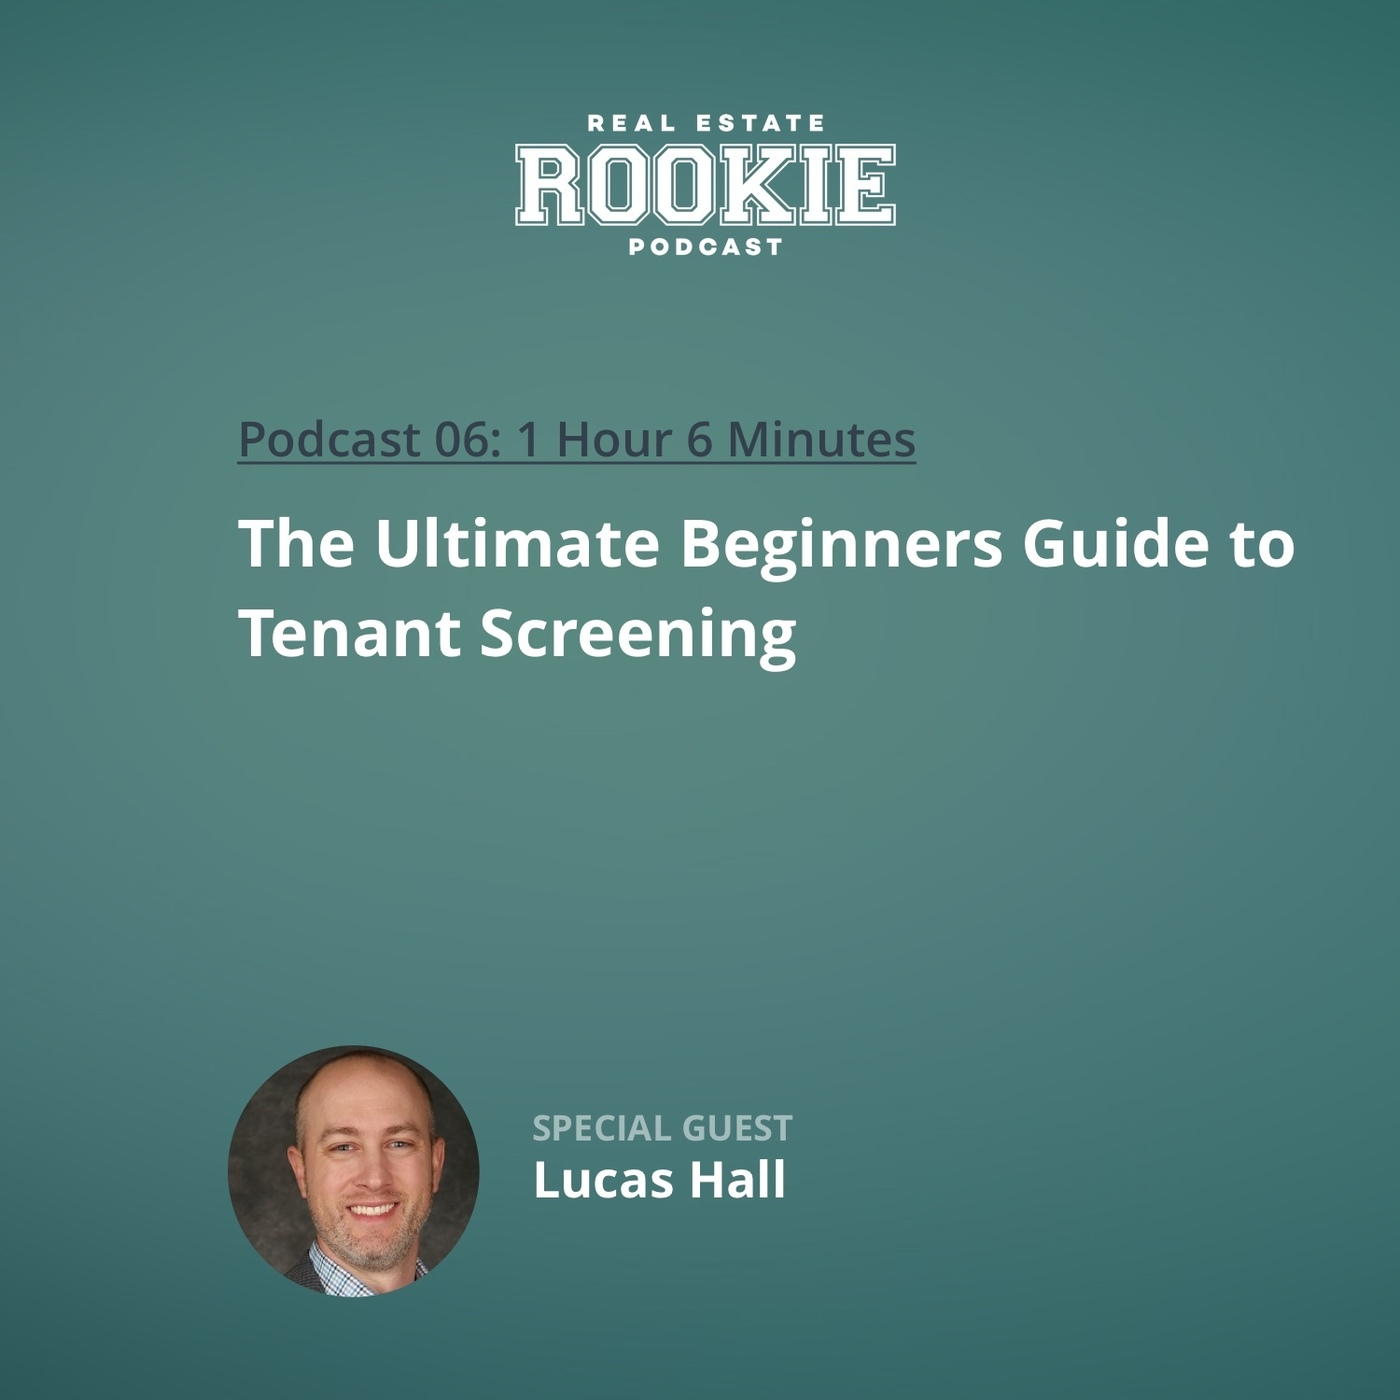 The Ultimate Beginners Guide to Tenant Screening with Lucas Hall